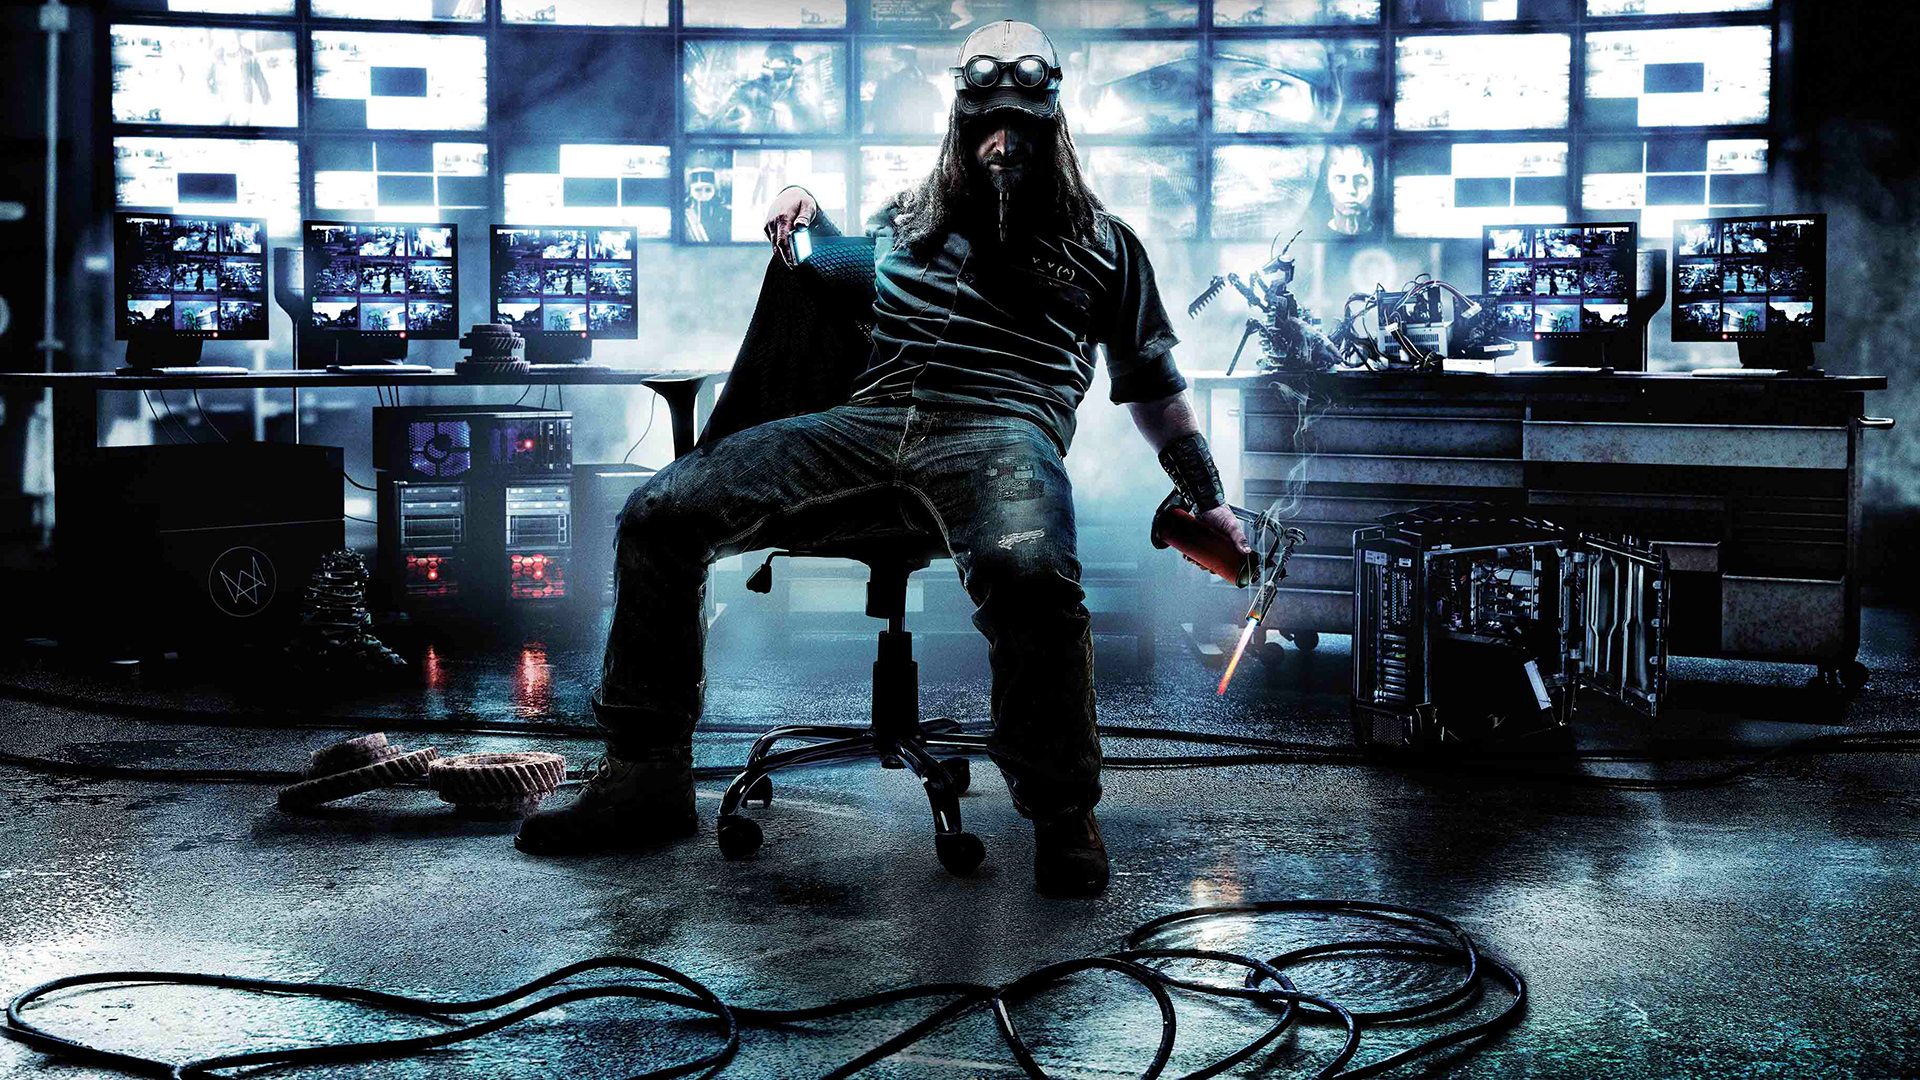 Watch Dogs 1 Wallpapers Posted By Christopher Peltier